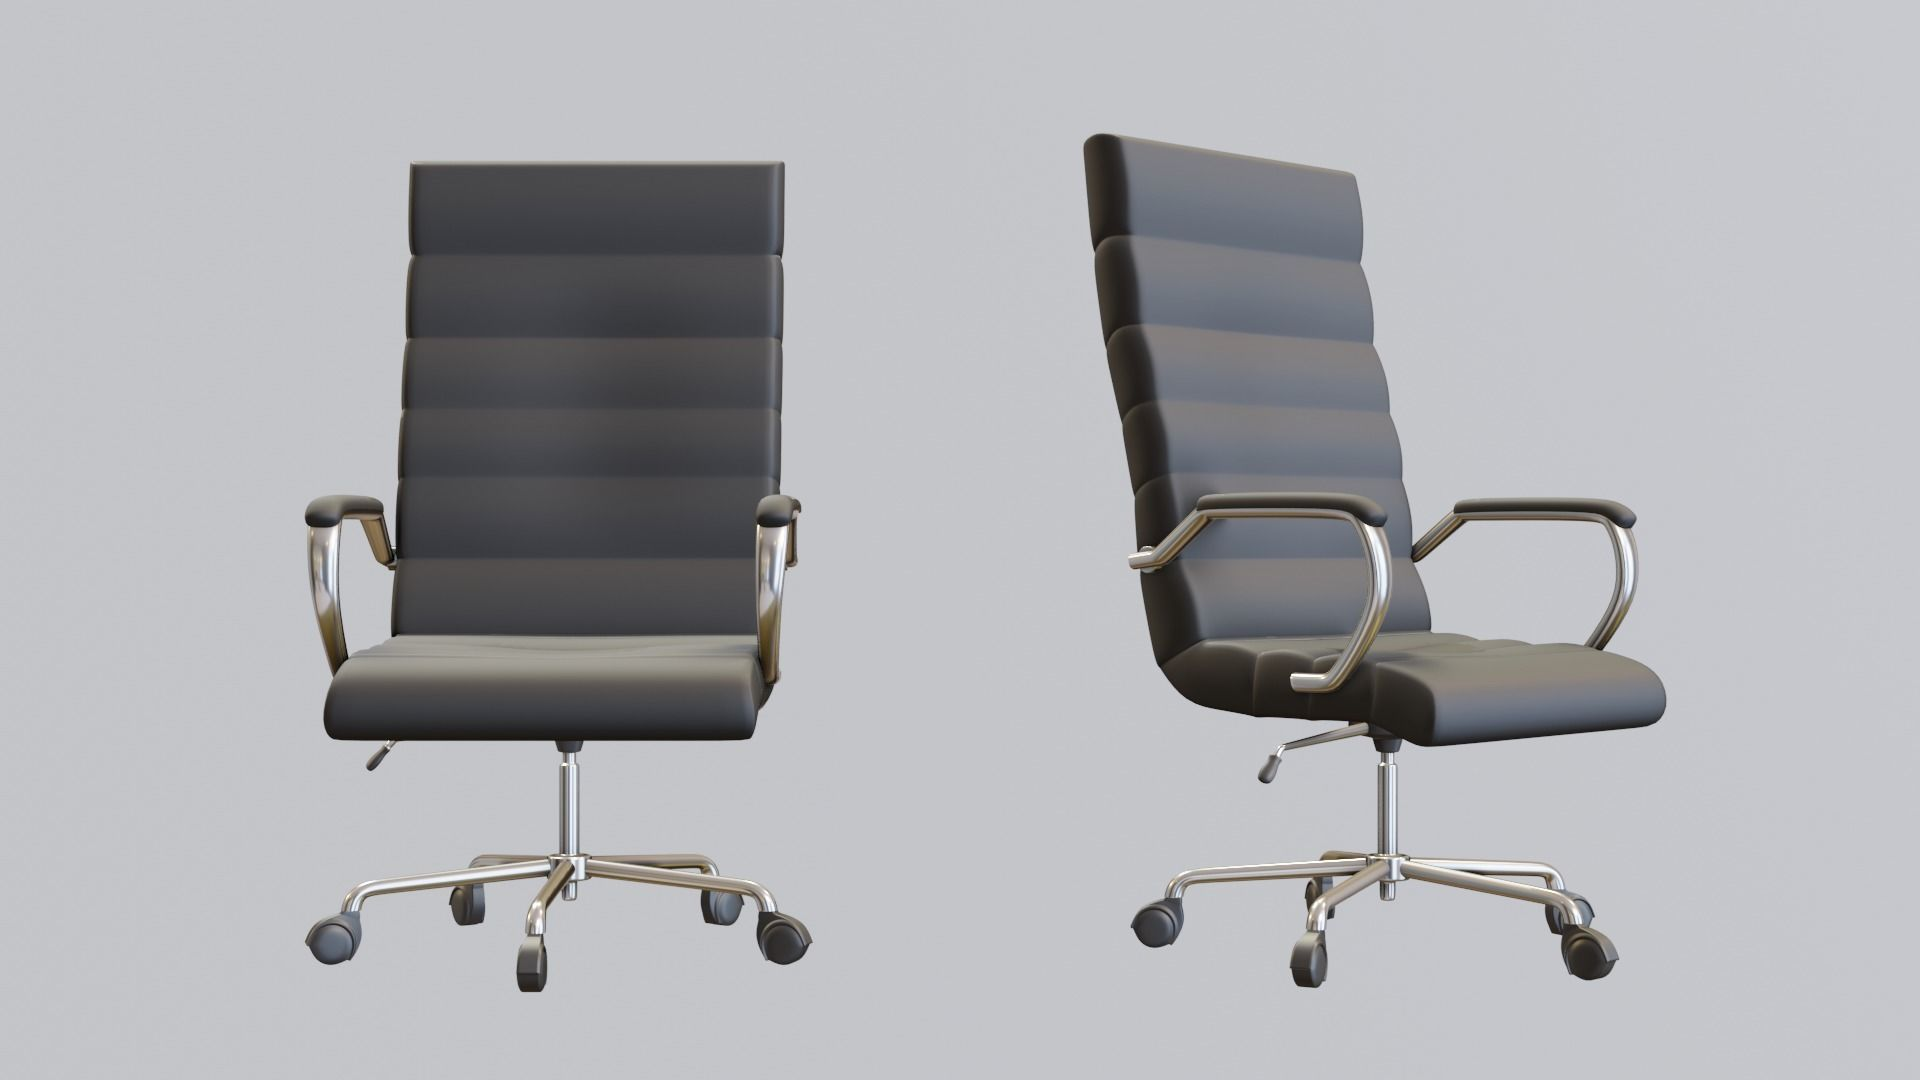 modern black office chair also for gaming